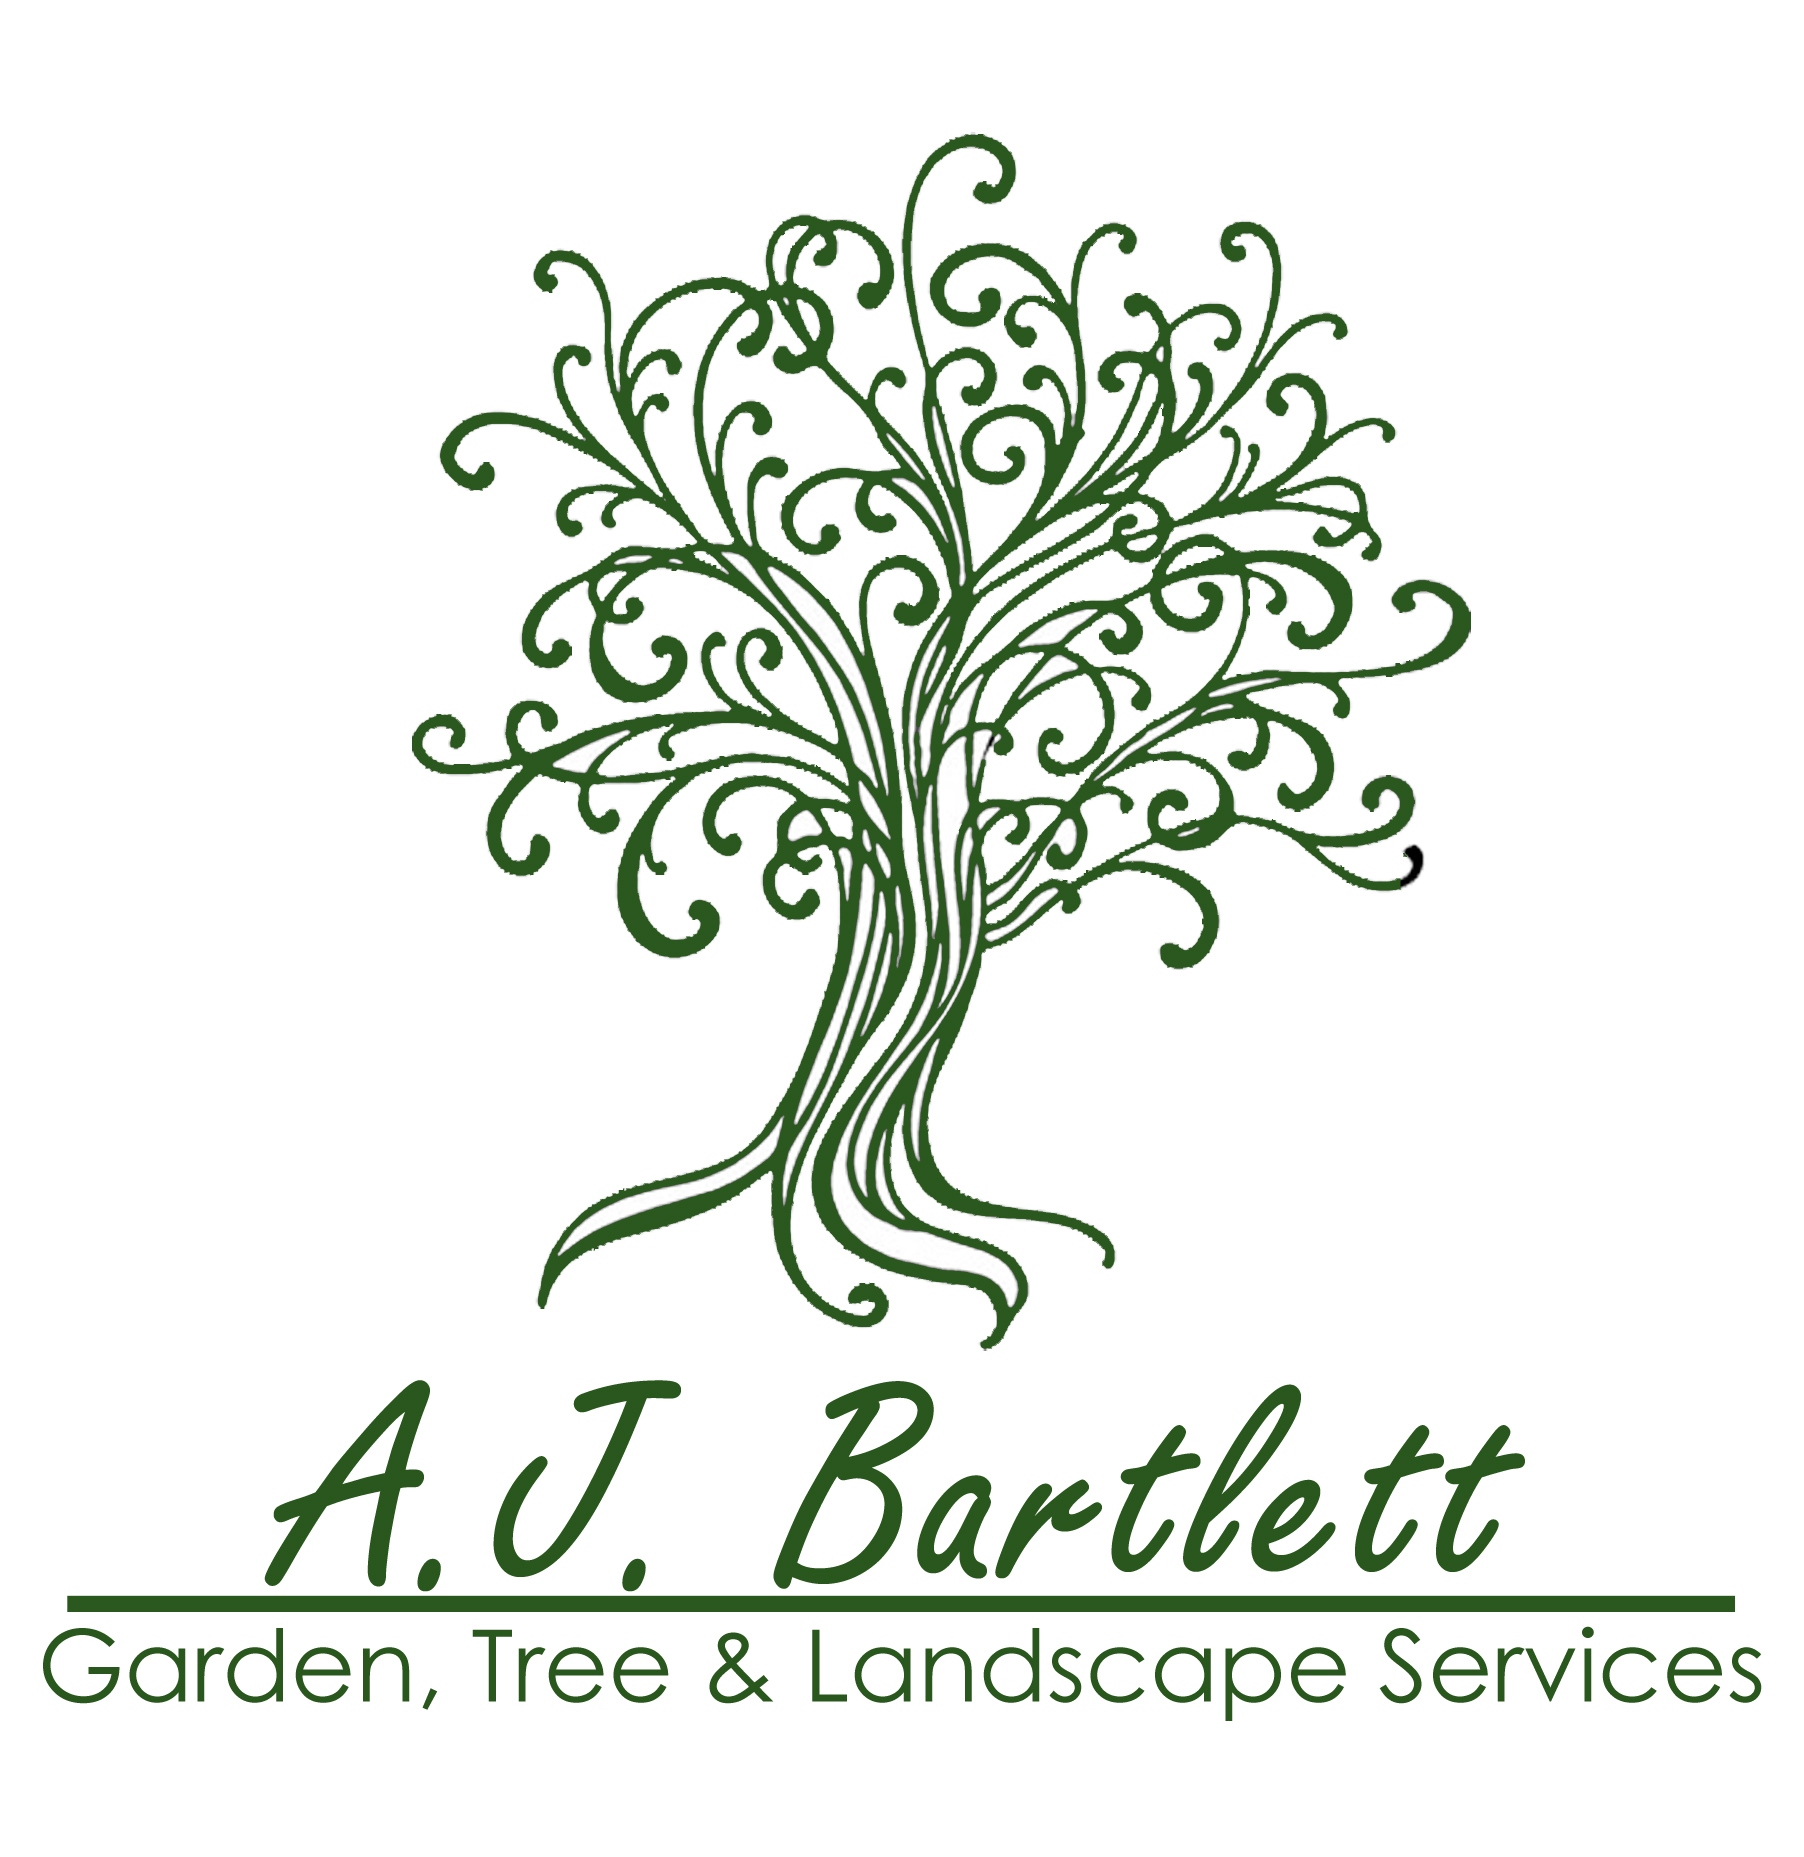 Aj bartlett garden tree landscape services for Tree and garden services